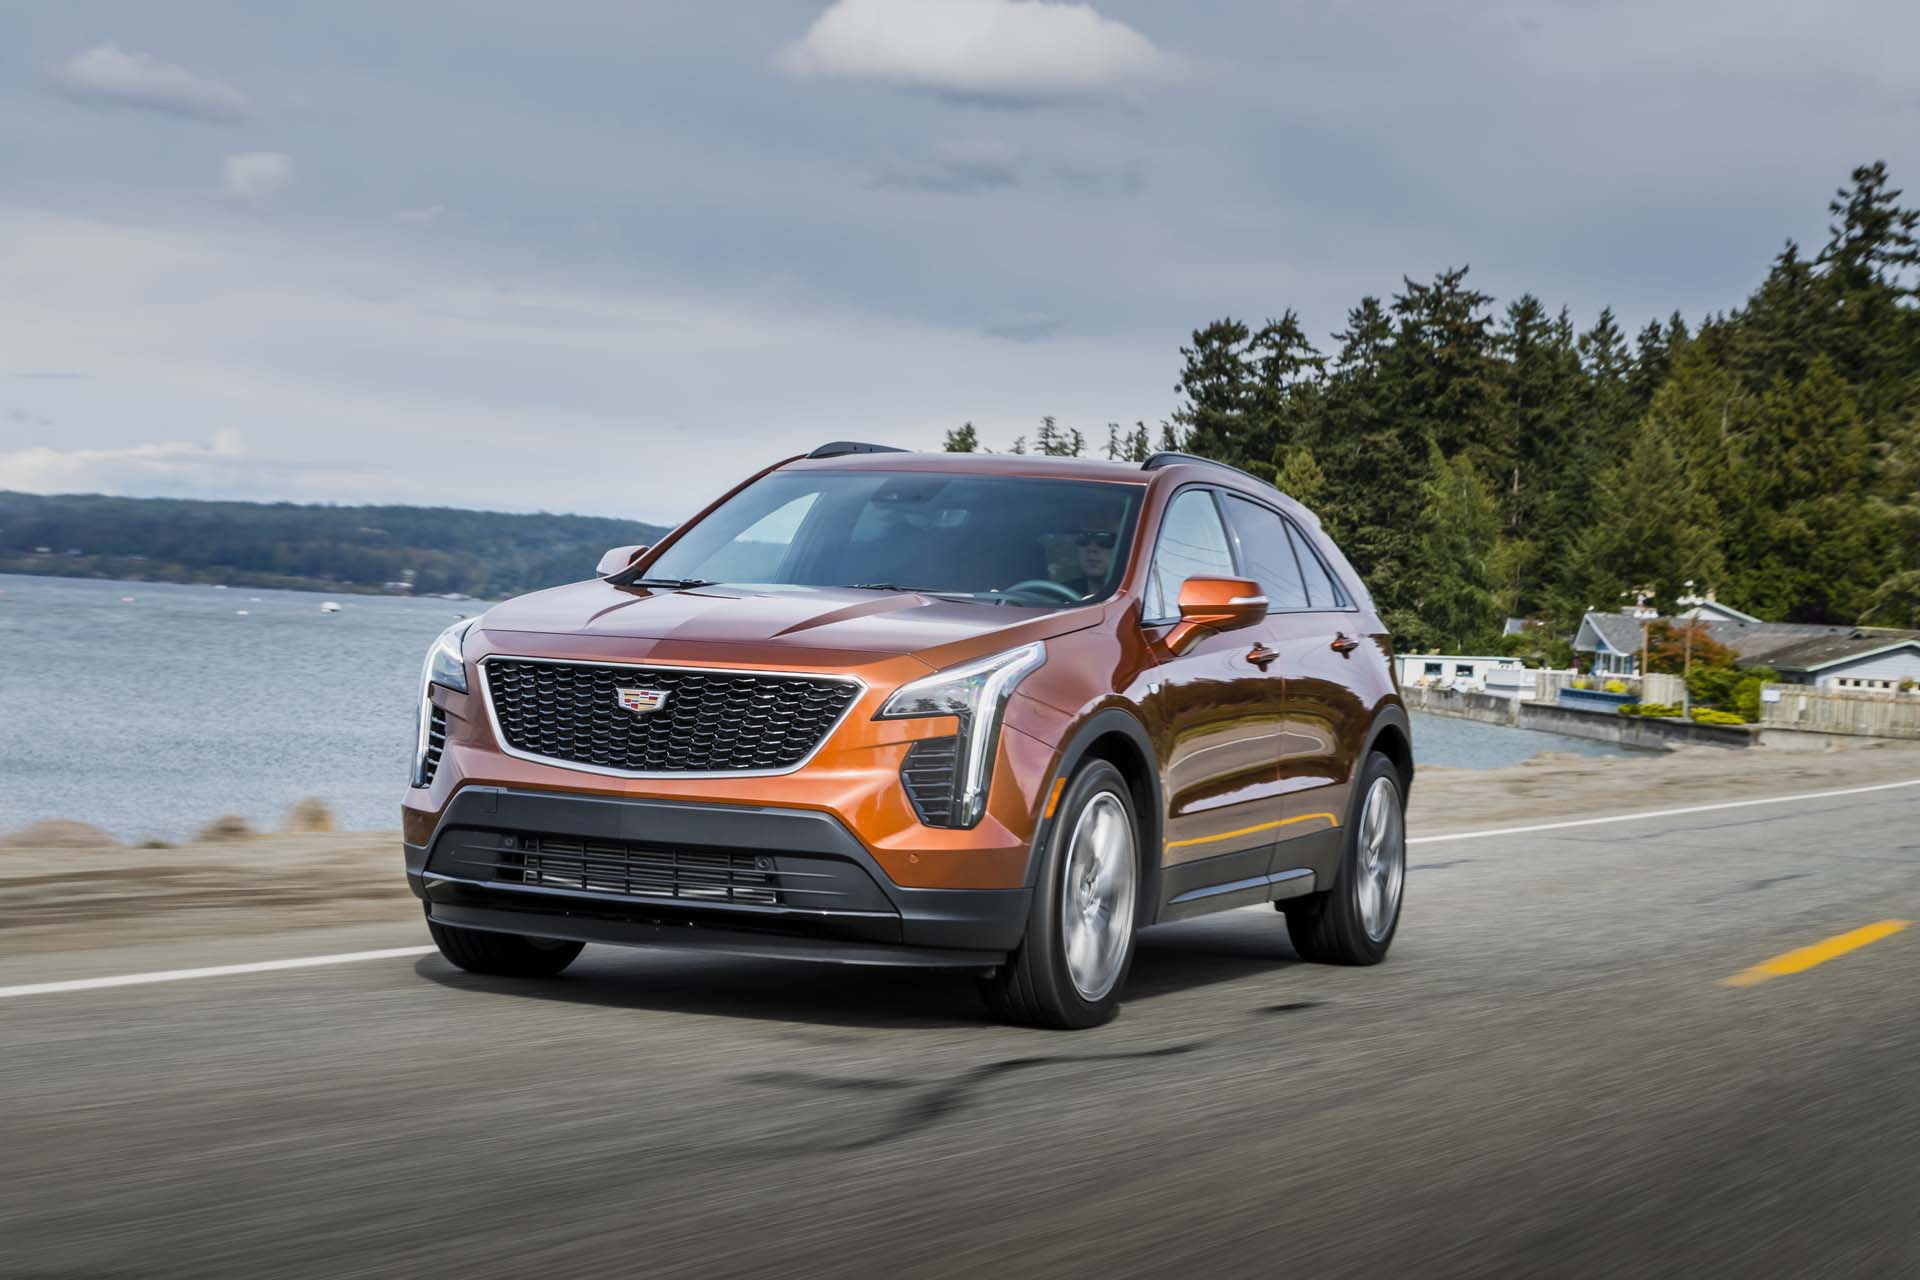 2019 Cadillac XT4 first drive review: Luxury crossover SUV ...